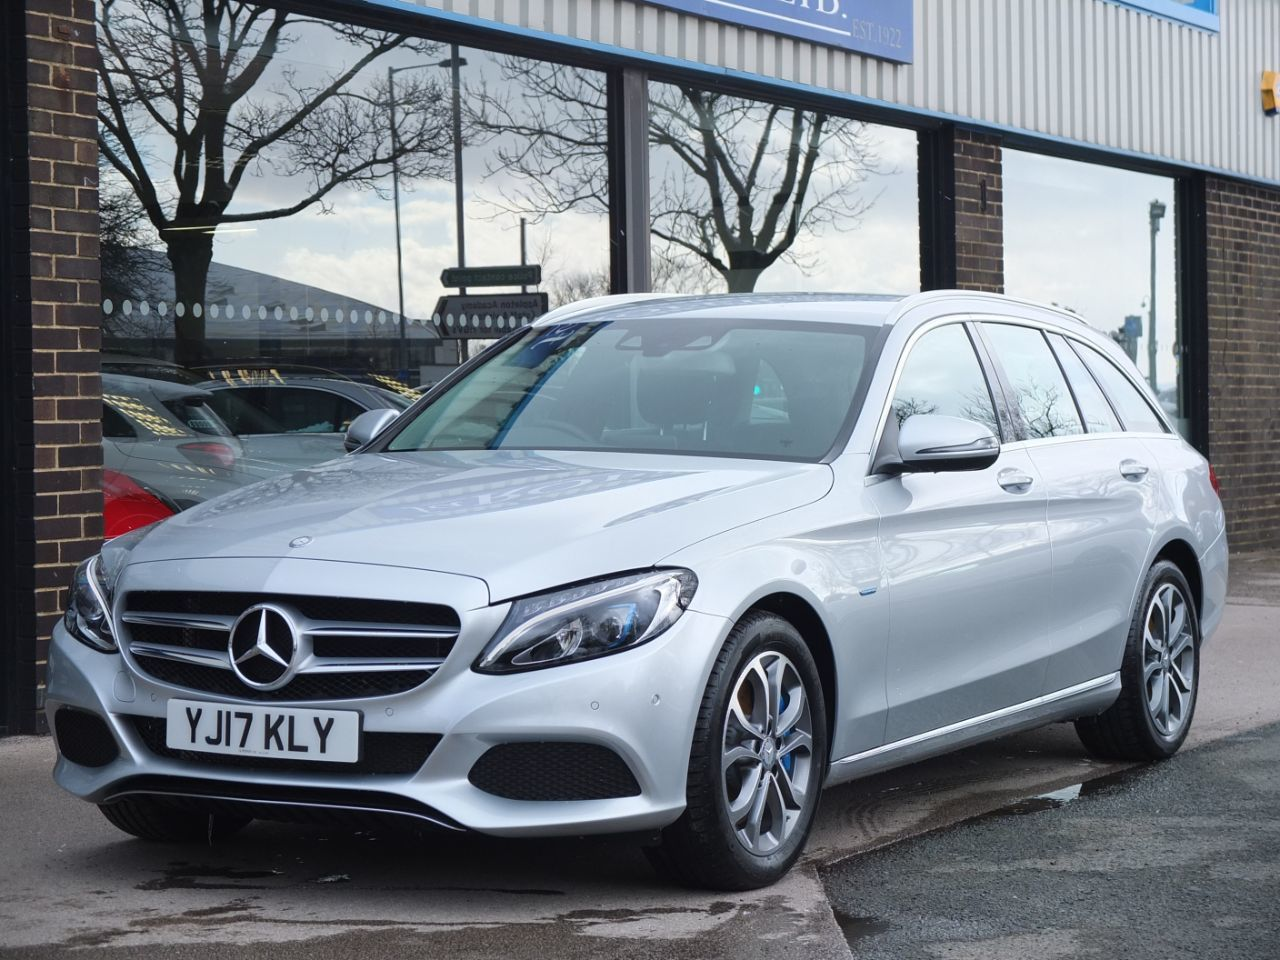 Mercedes-Benz C Class 2.0 Estate C350e Sport PHEV Auto Estate Petrol / Electric Hybrid Iridium Silver MetallicMercedes-Benz C Class 2.0 Estate C350e Sport PHEV Auto Estate Petrol / Electric Hybrid Iridium Silver Metallic at fa Roper Ltd Bradford